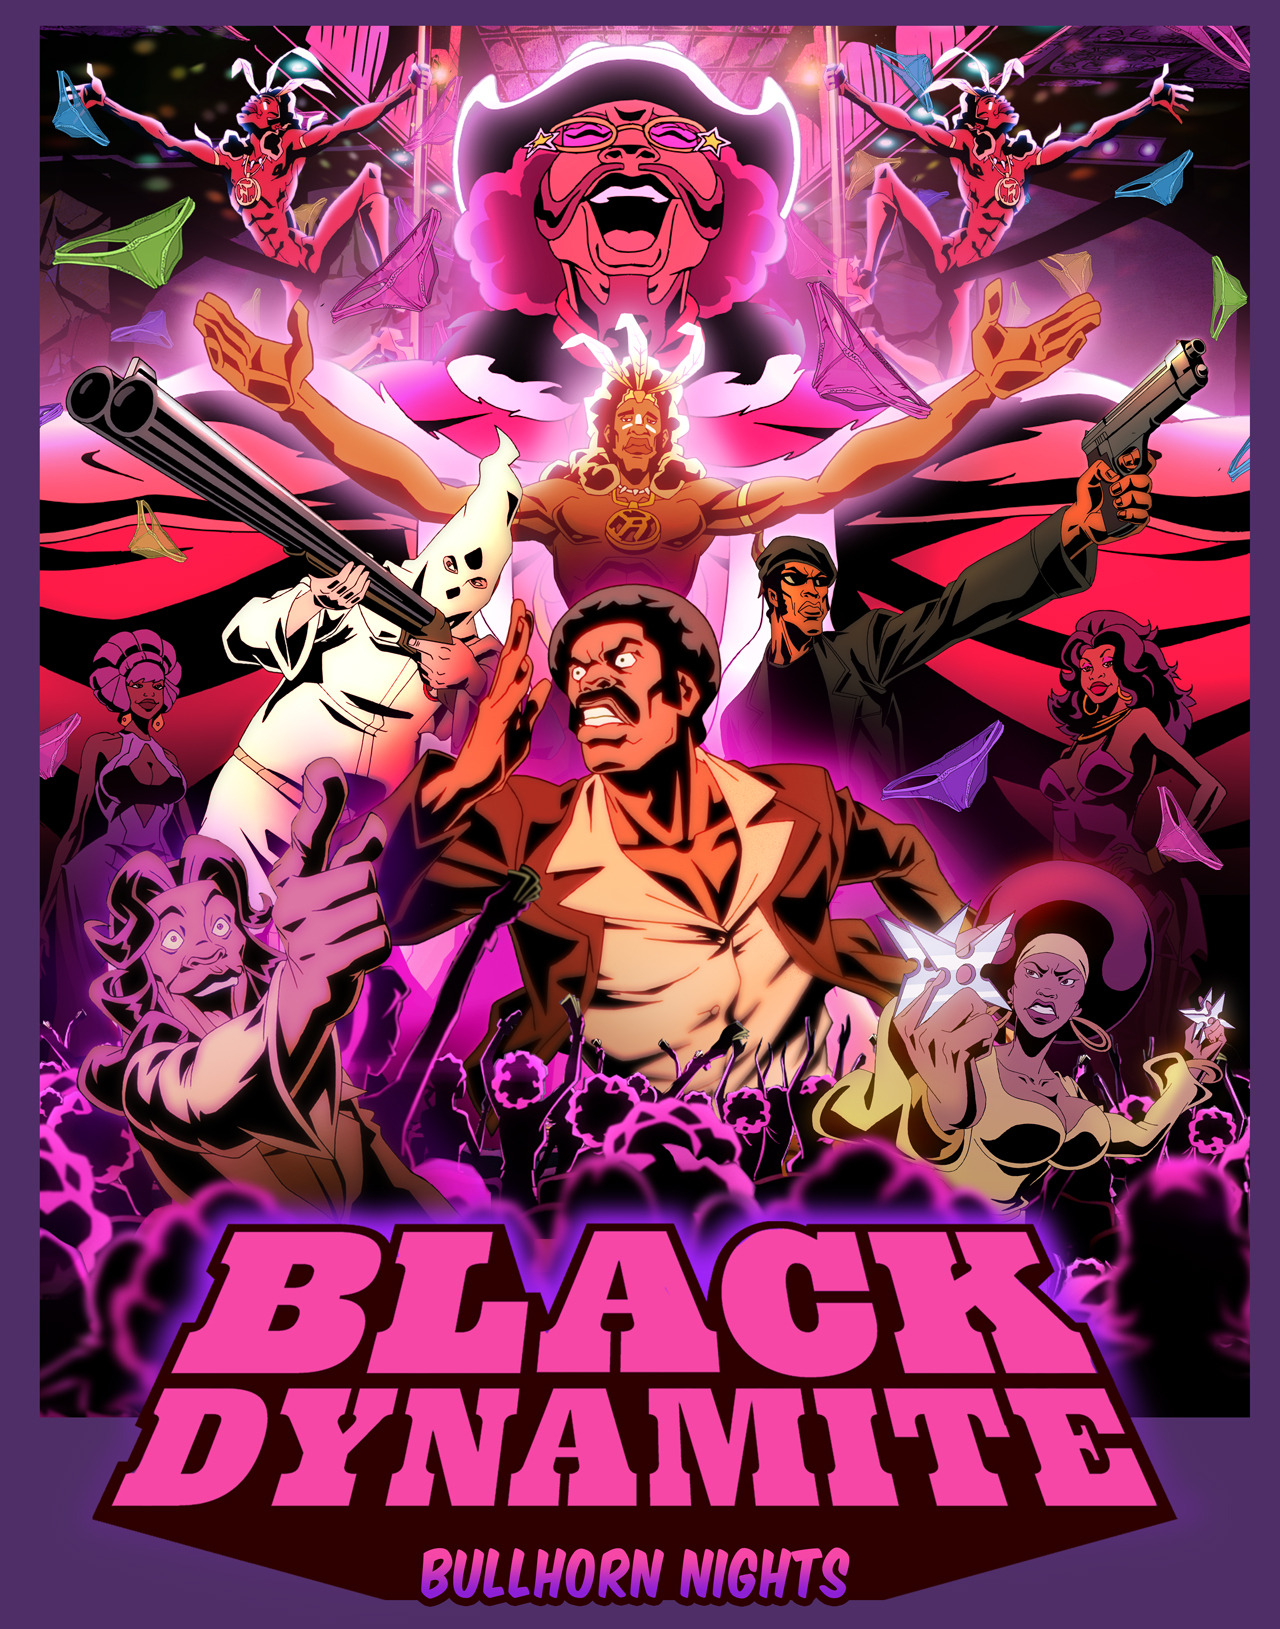 Watch an all new episode of Black Dynamite TONIGHT at 11:30pm on Adult Swim.